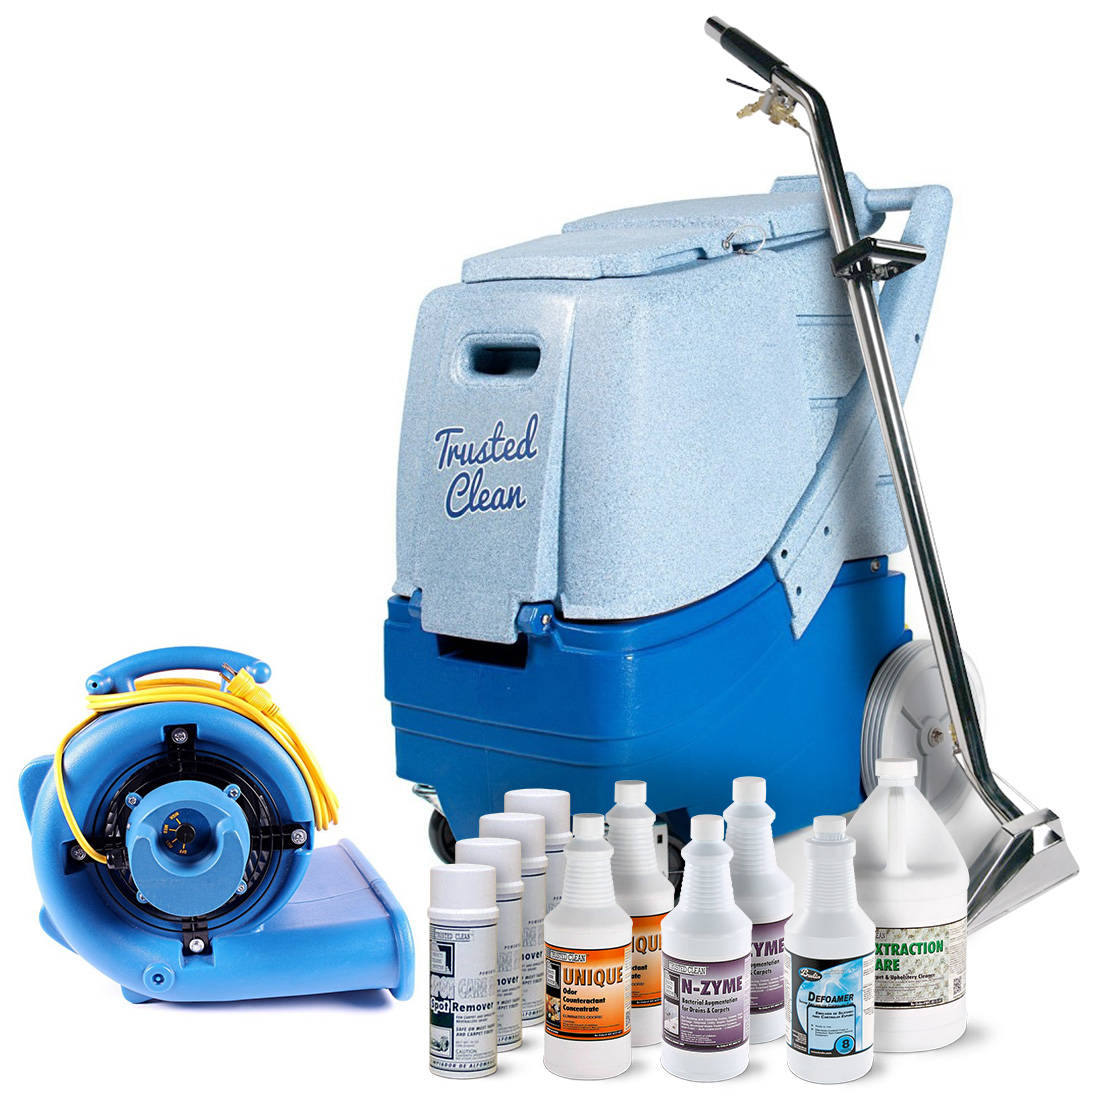 Carpet Cleaning Vacuum Trusted Clean Basic Carpet Cleaning Package